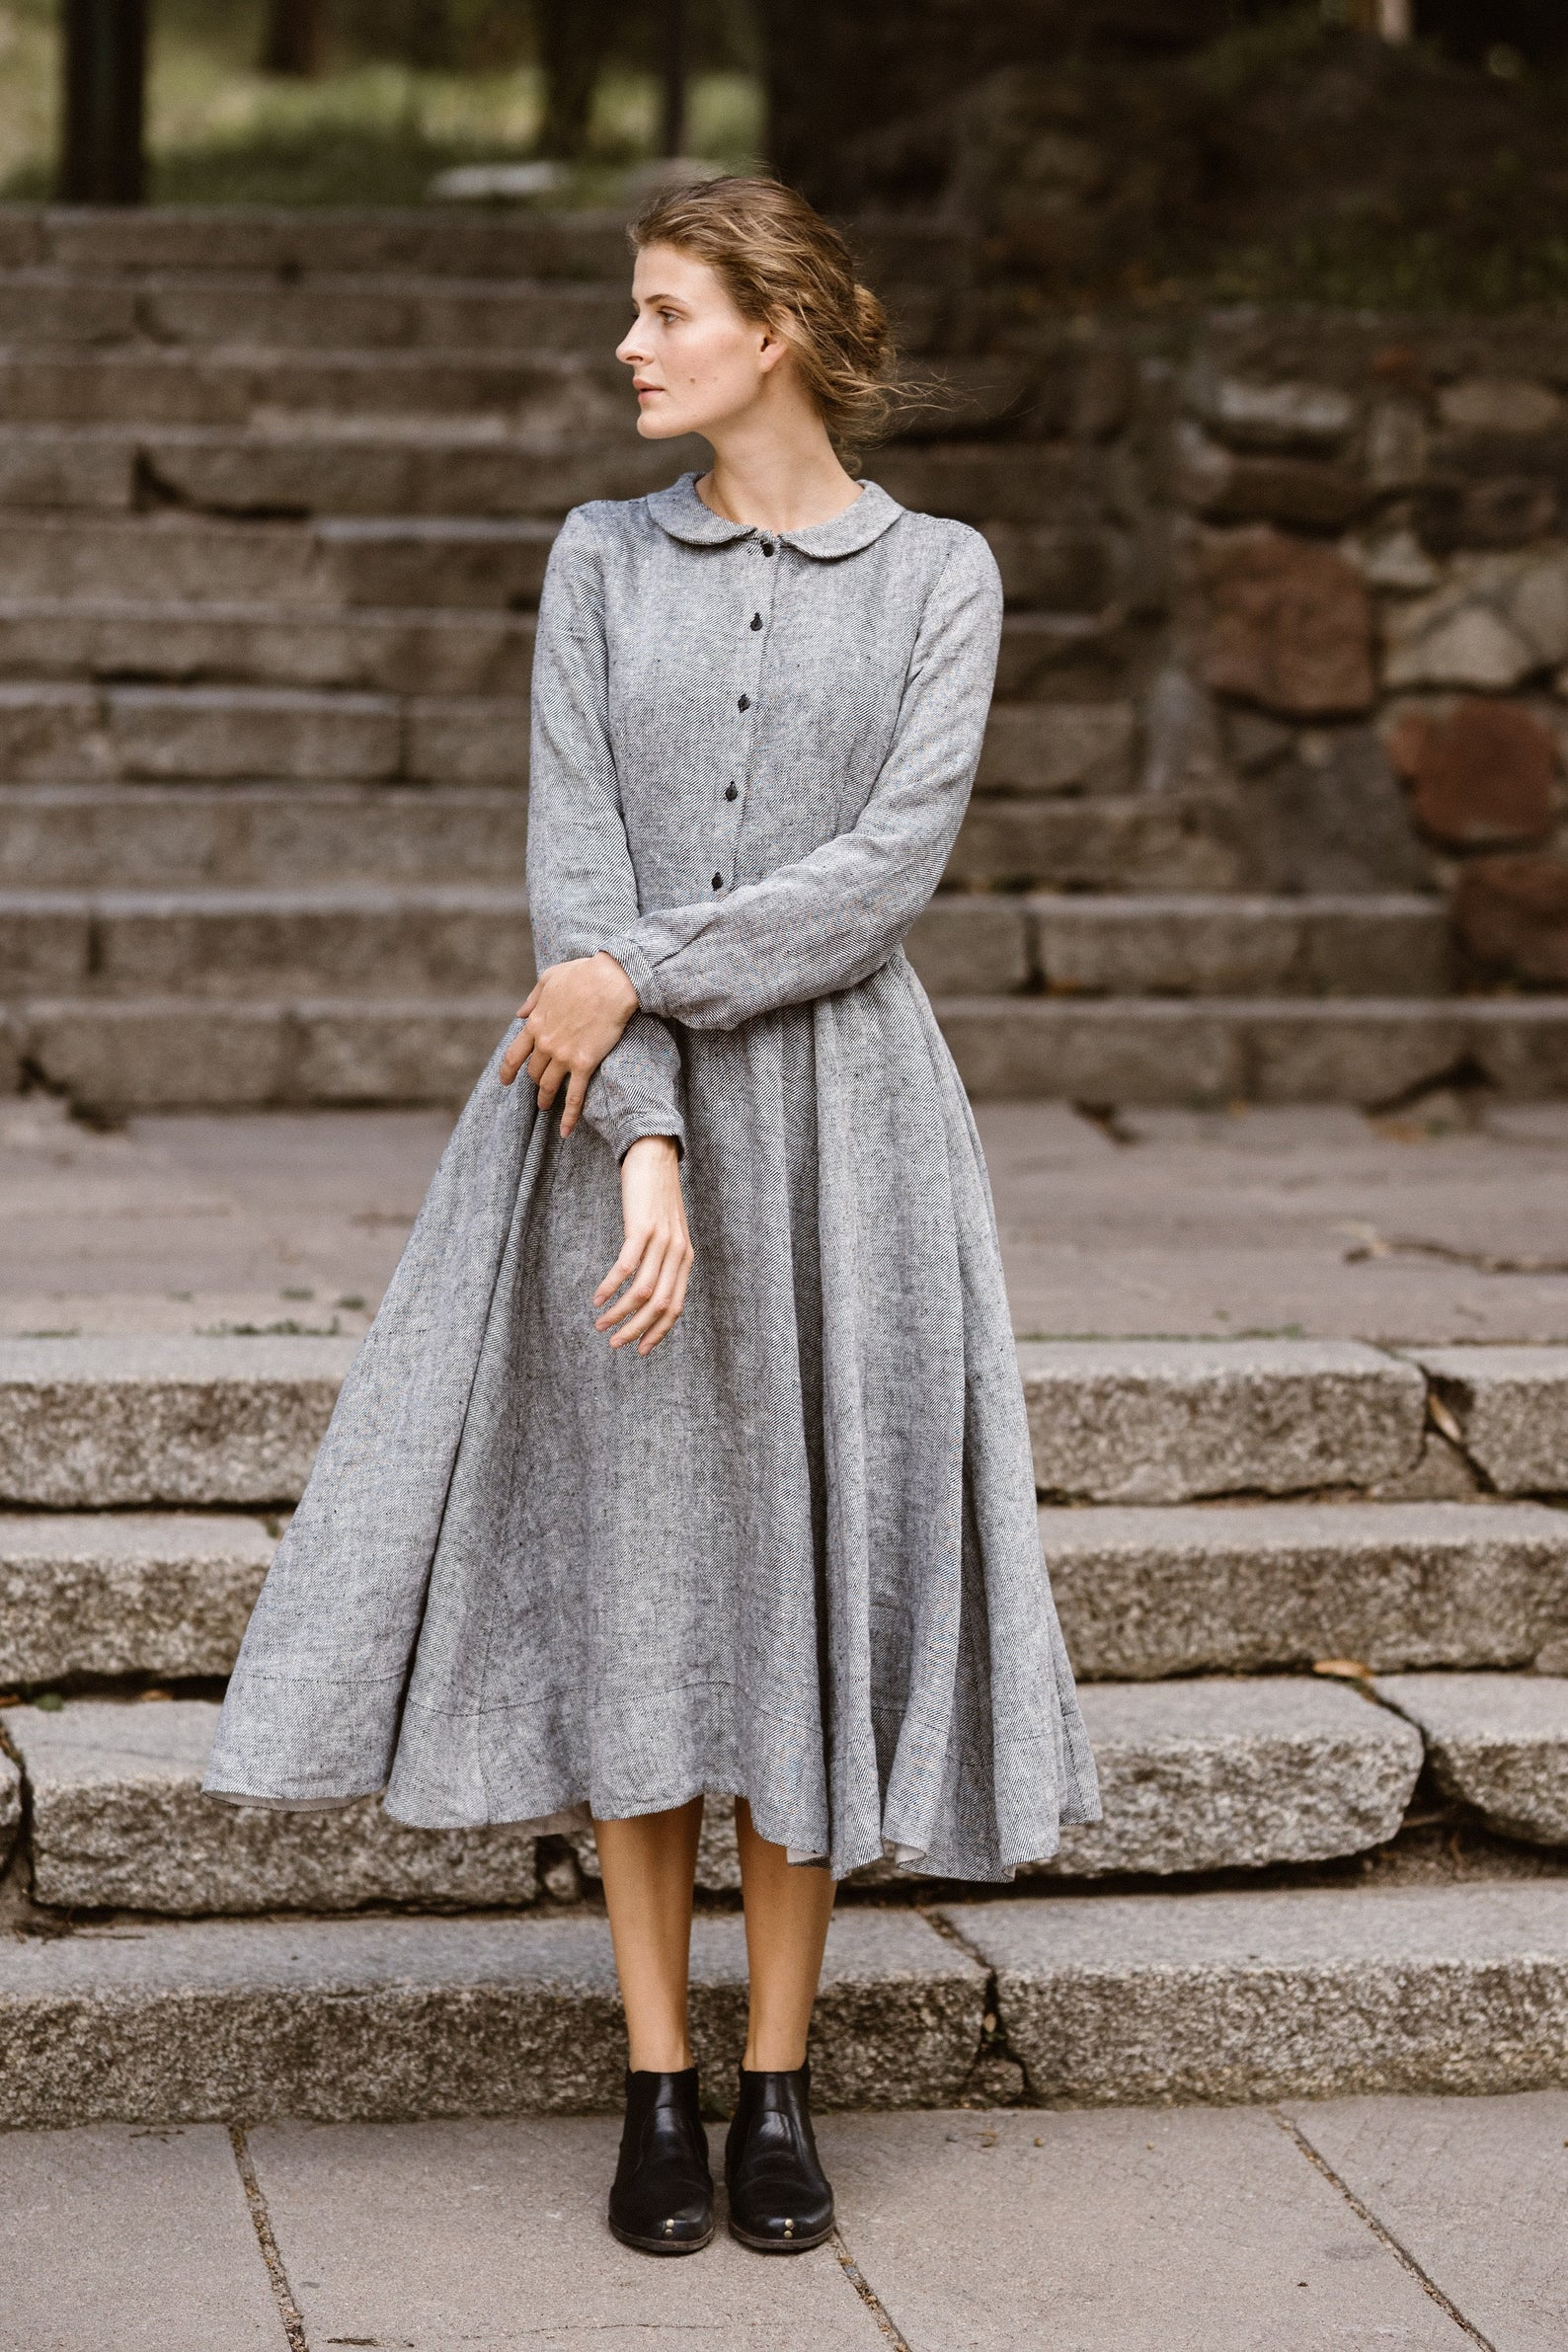 A woman standing on stone steps wearing a grey linen dress with long sleeves, buttons down the chest, and a peter pan collar best cottagecore dresses